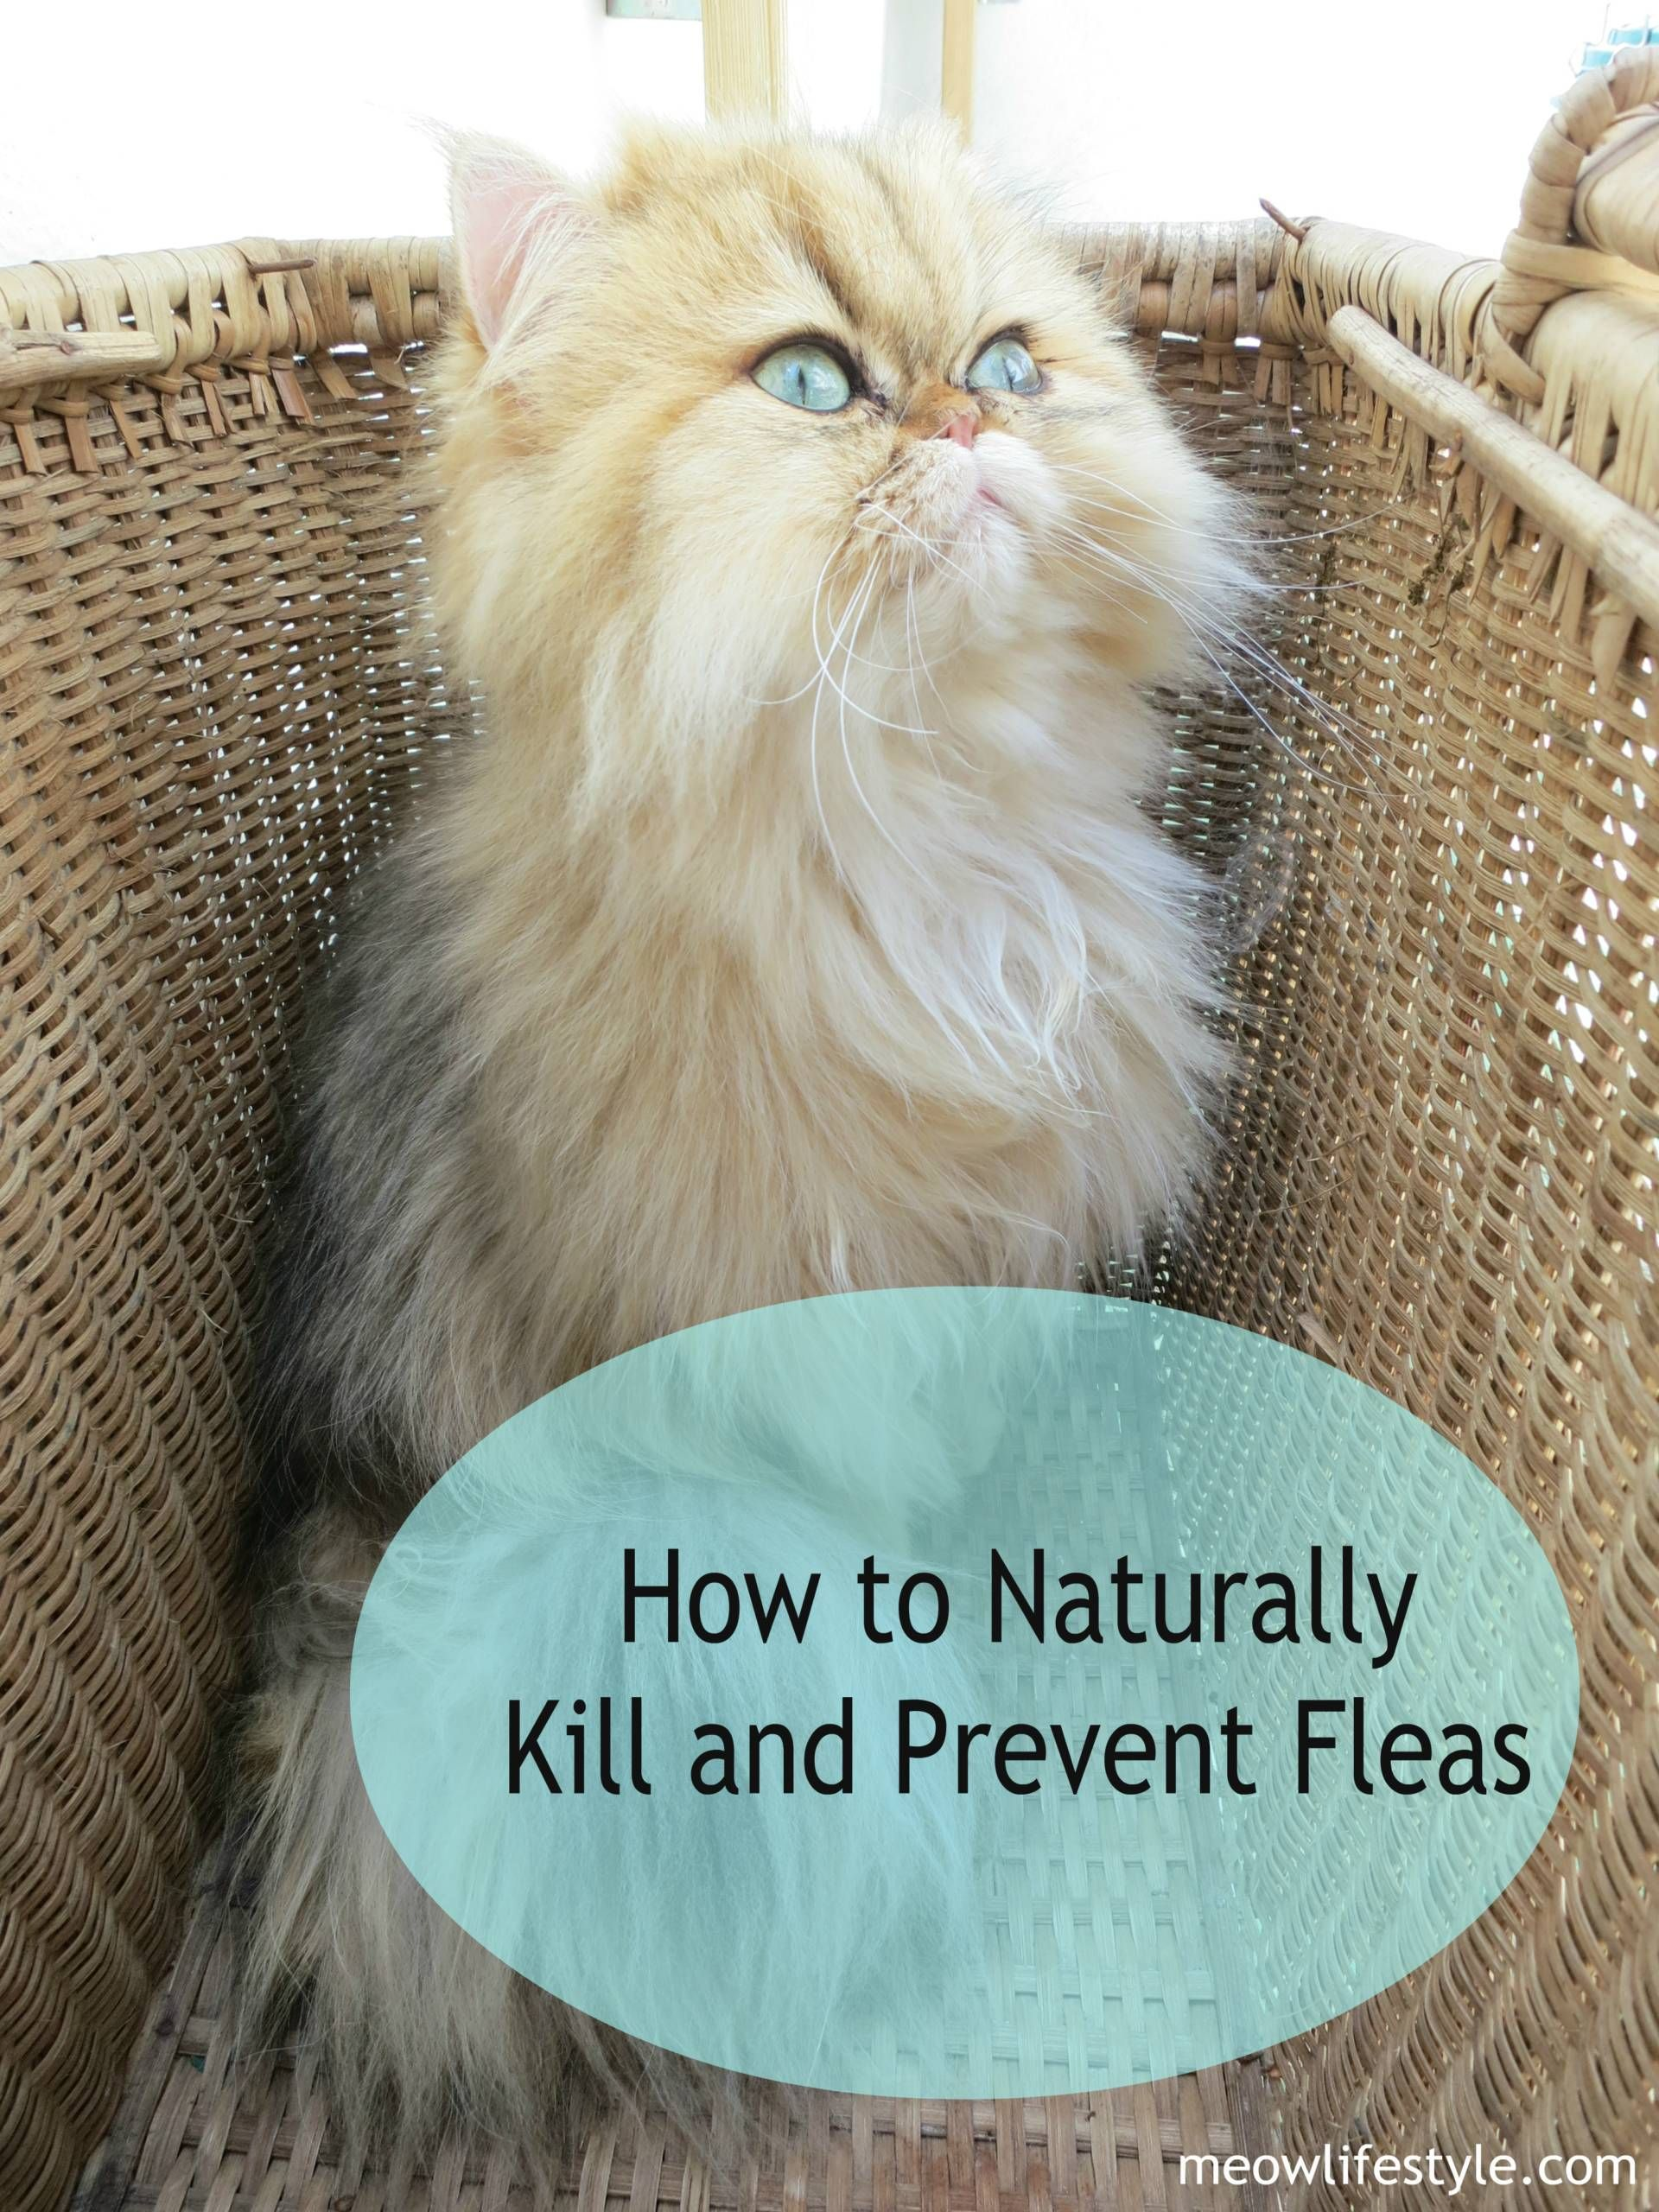 How To Naturally Kill And Prevent Fleas Meow Lifestyle Essential Oils Cats Cat Care Fleas